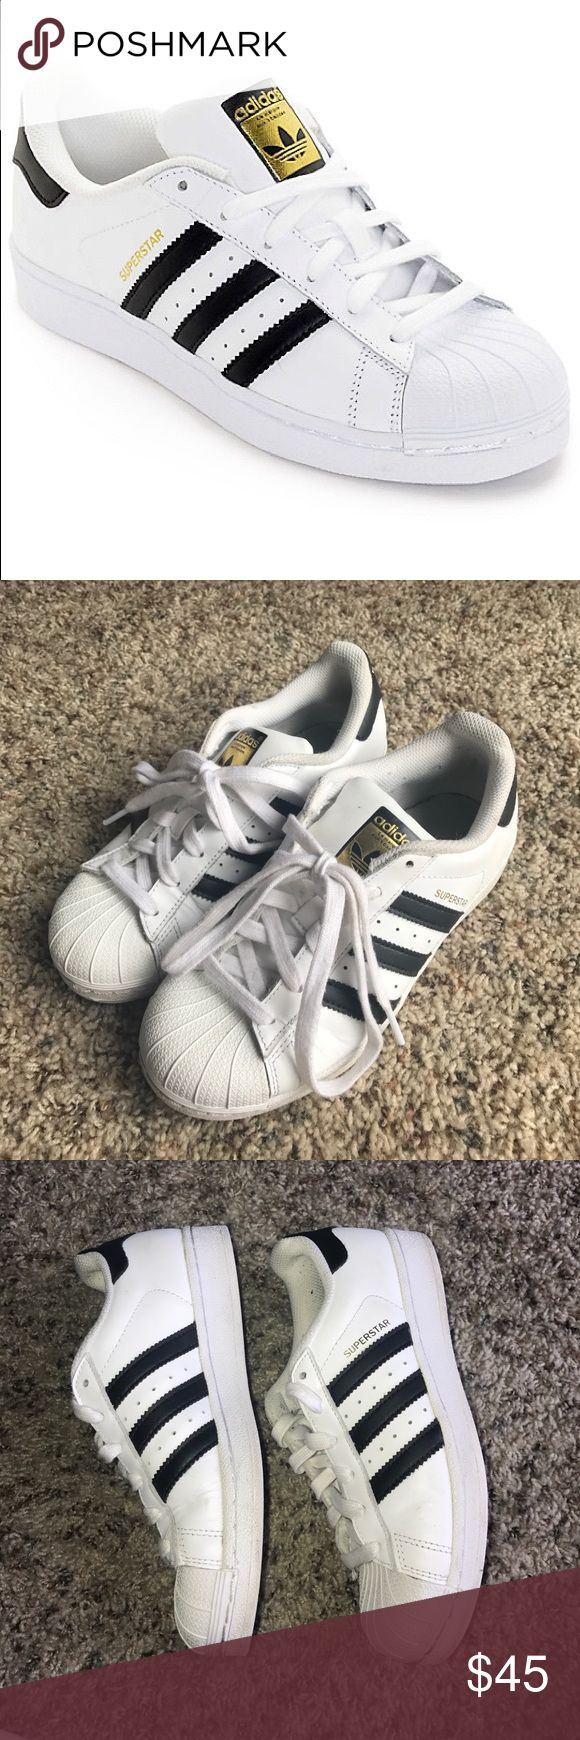 Adidas Superstar Shoes LOVE these shoes but I never wear them anymore. Super comfortable    Men's 3.5 - Women's 5.5.       Let me know if you have any questions Adidas Shoes Athletic Shoes